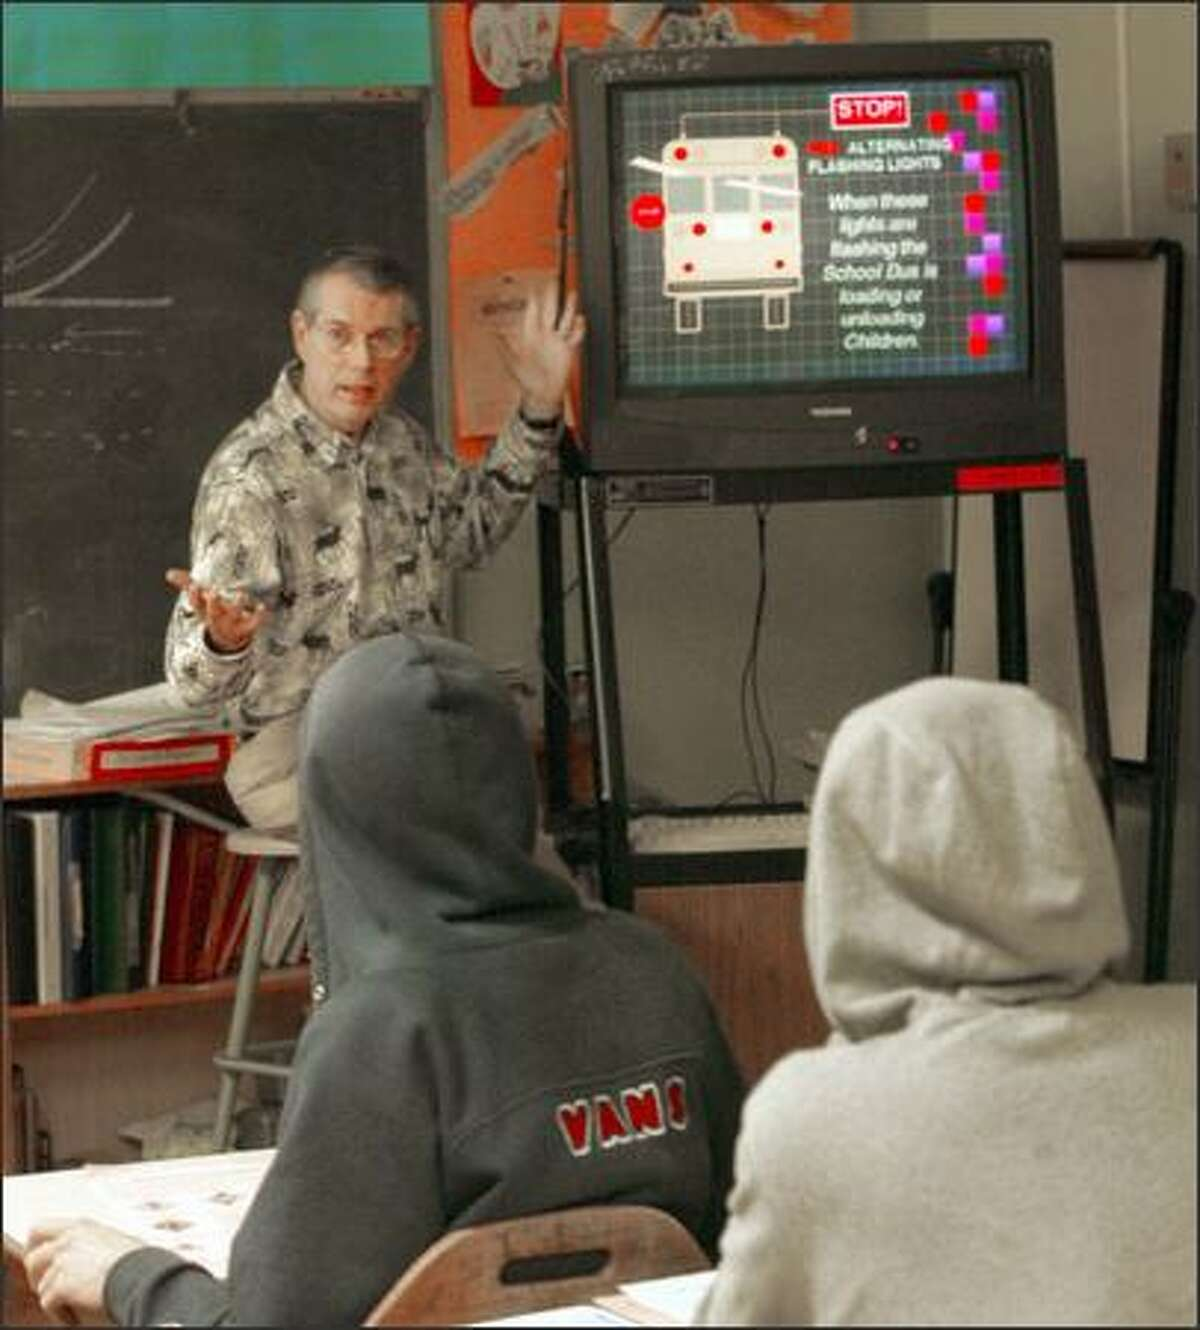 Larry Temple instructs students at Nathan Hale High School on the meaning of red lights on a school bus. As fewer students sign up for the public-school courses, the cost per student rises, and more schools drop the course.